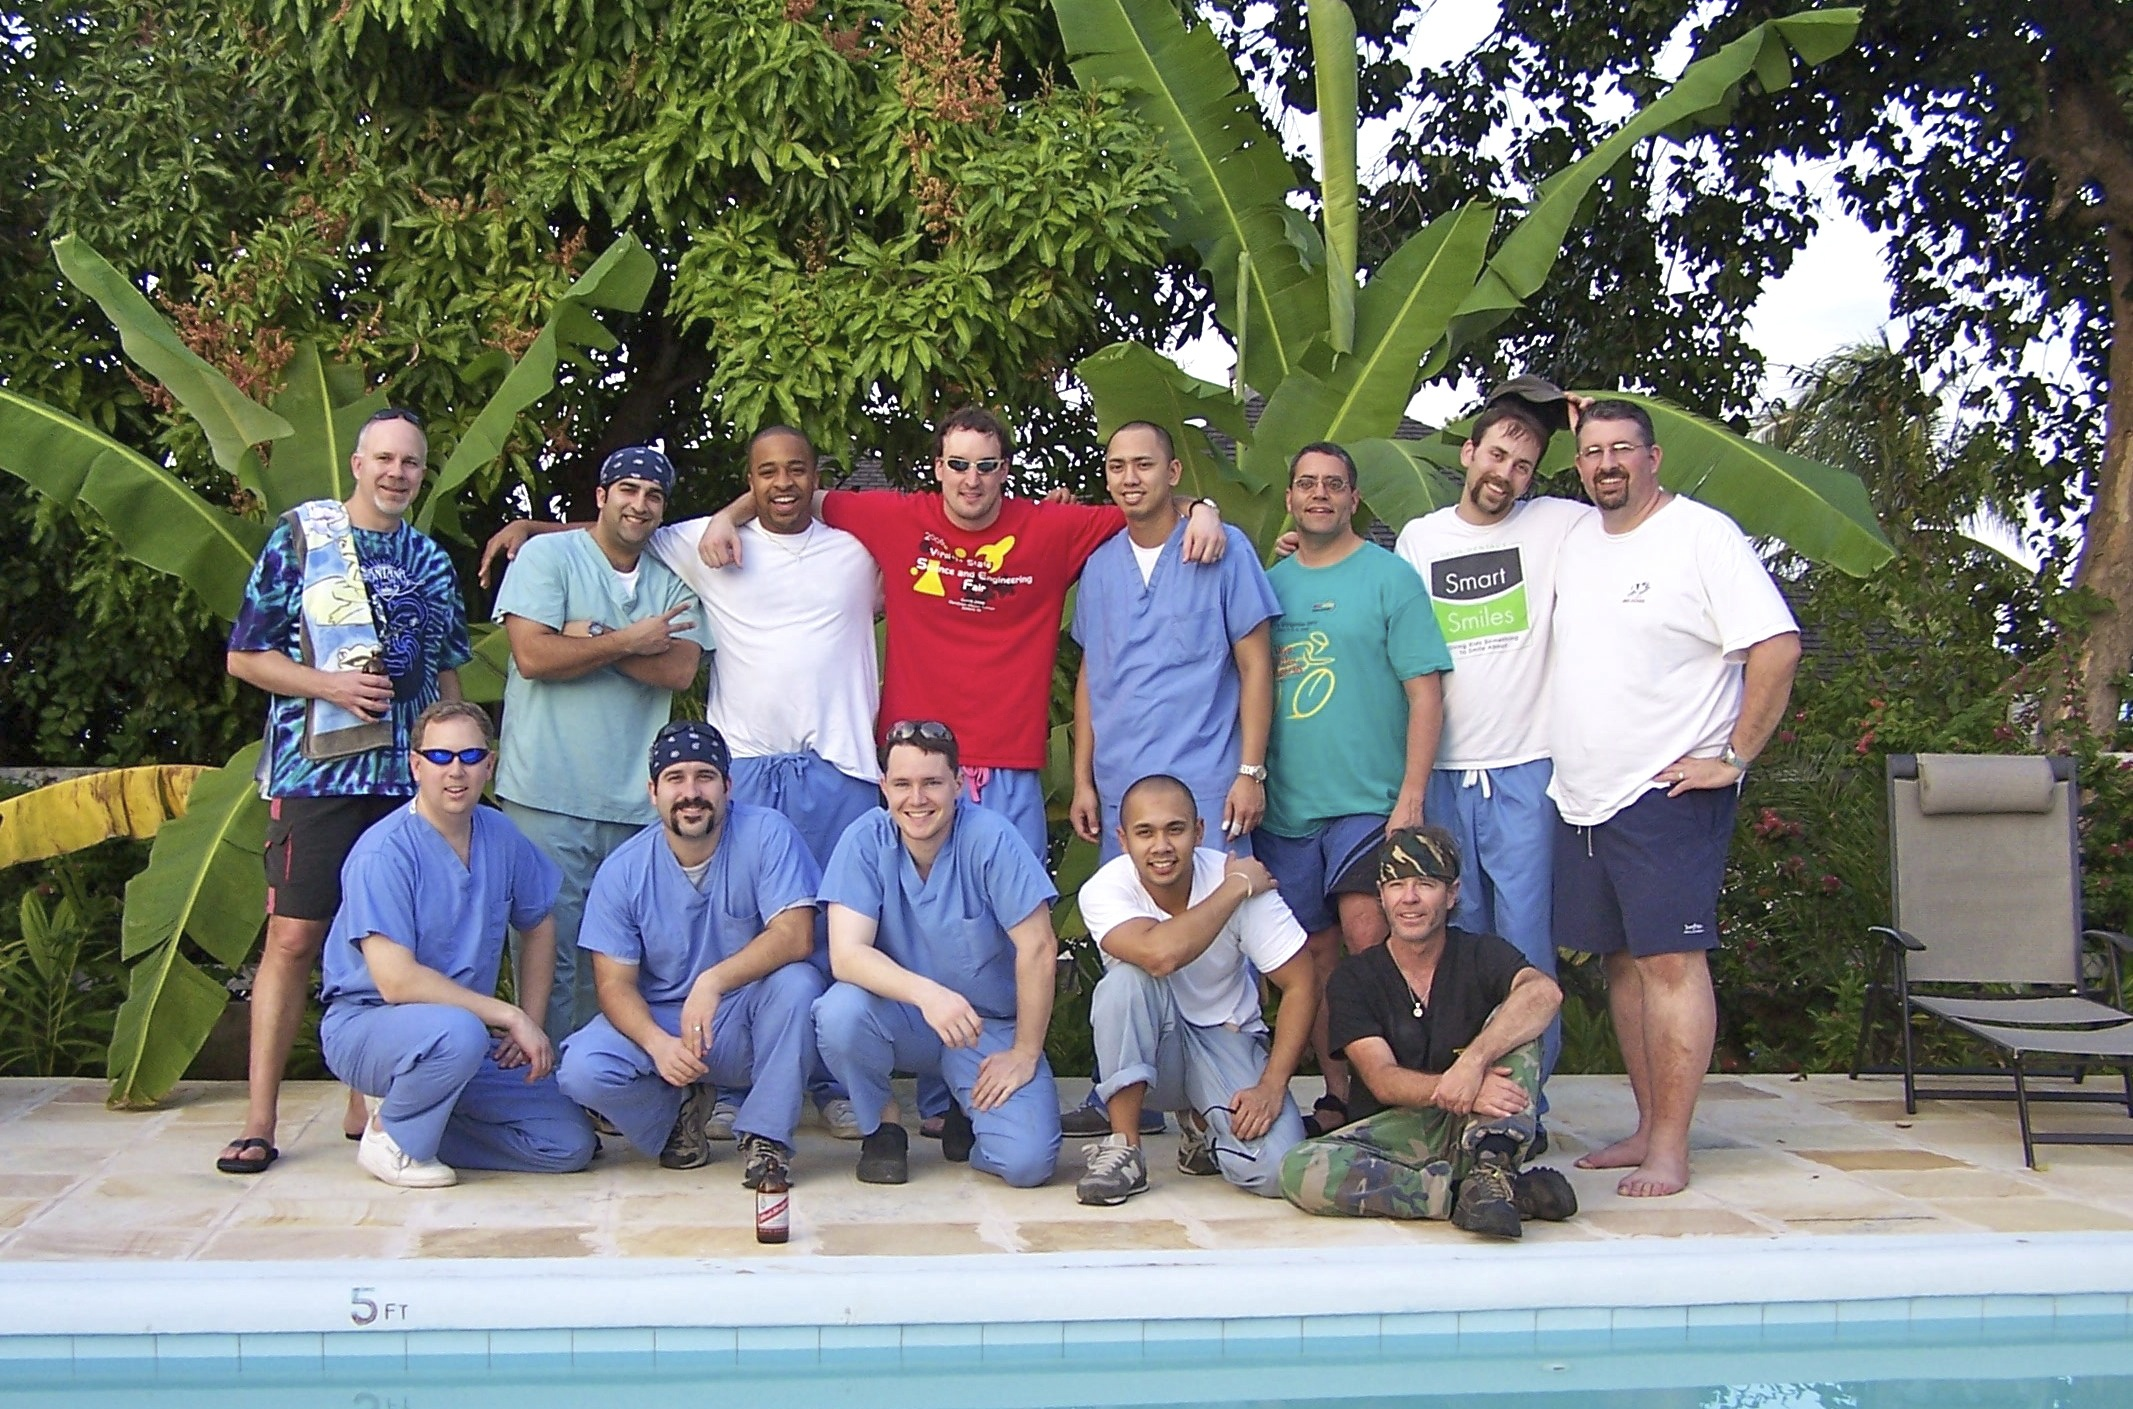 2007 - Spring Group 3